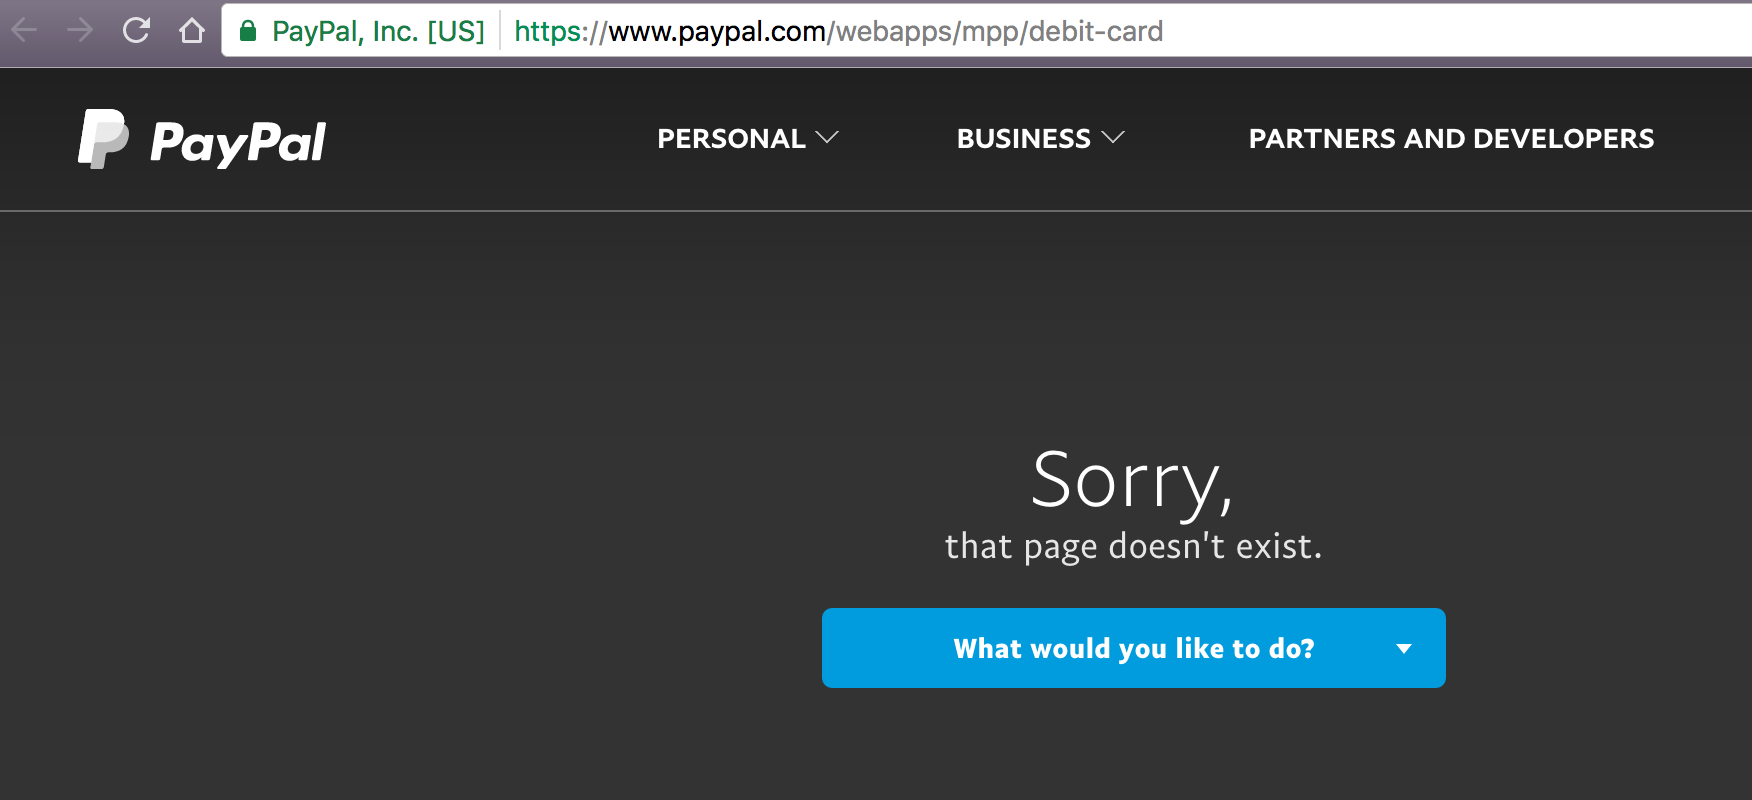 Just trying to activate business debit card.. - PayPal Community